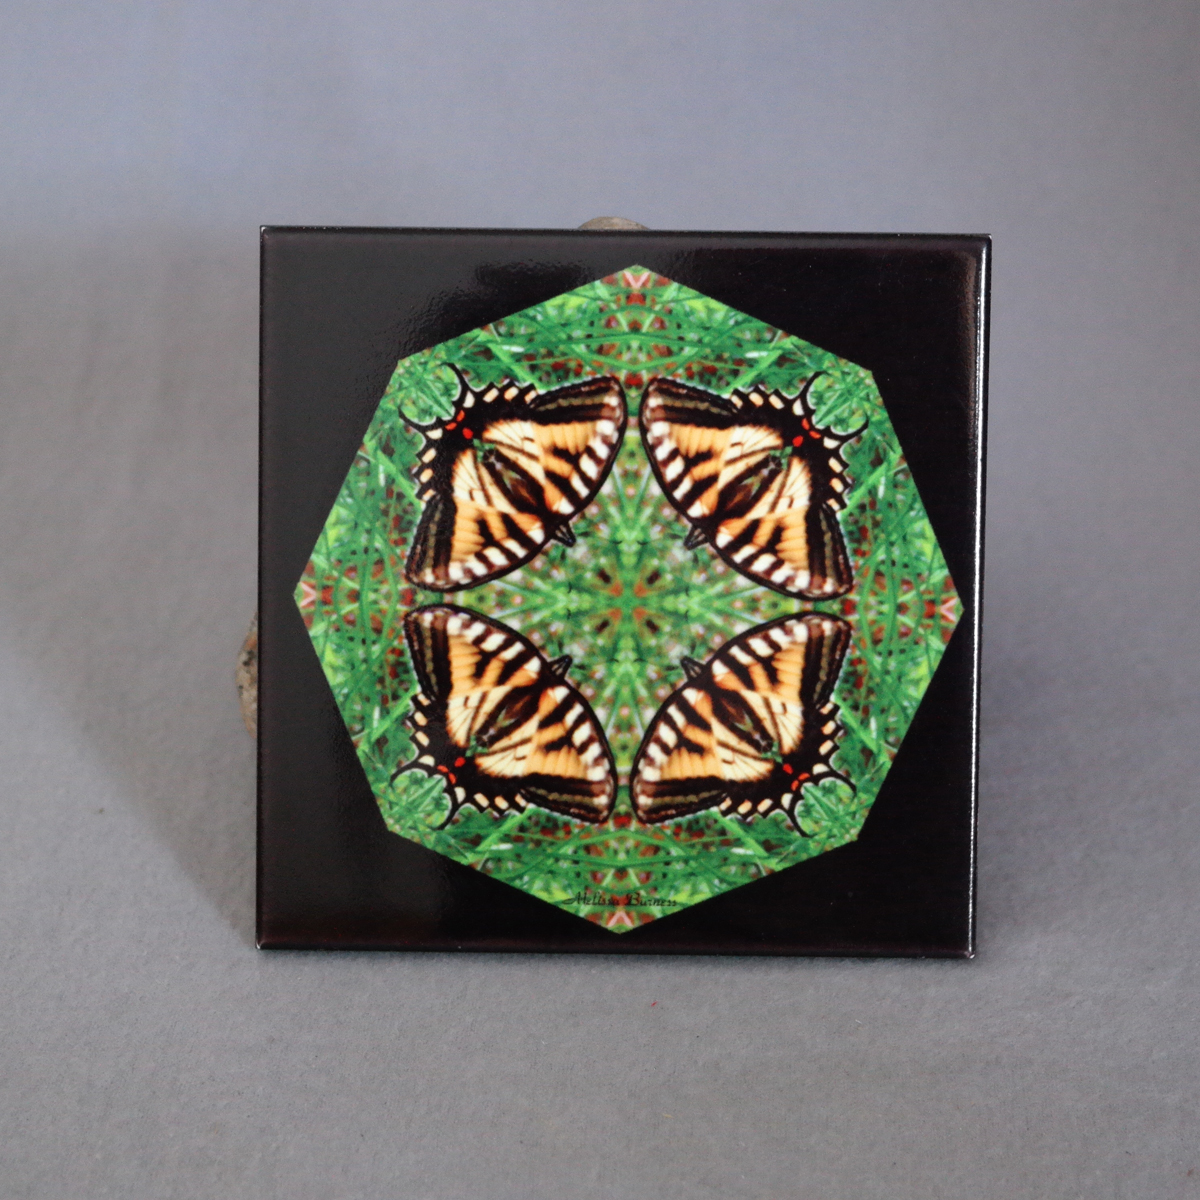 Sale Special Tiger Swallowtail Butterfly Decorative Ceramic Tile Coaster Sacred Geometry Kaleidoscope Wind Whisperer